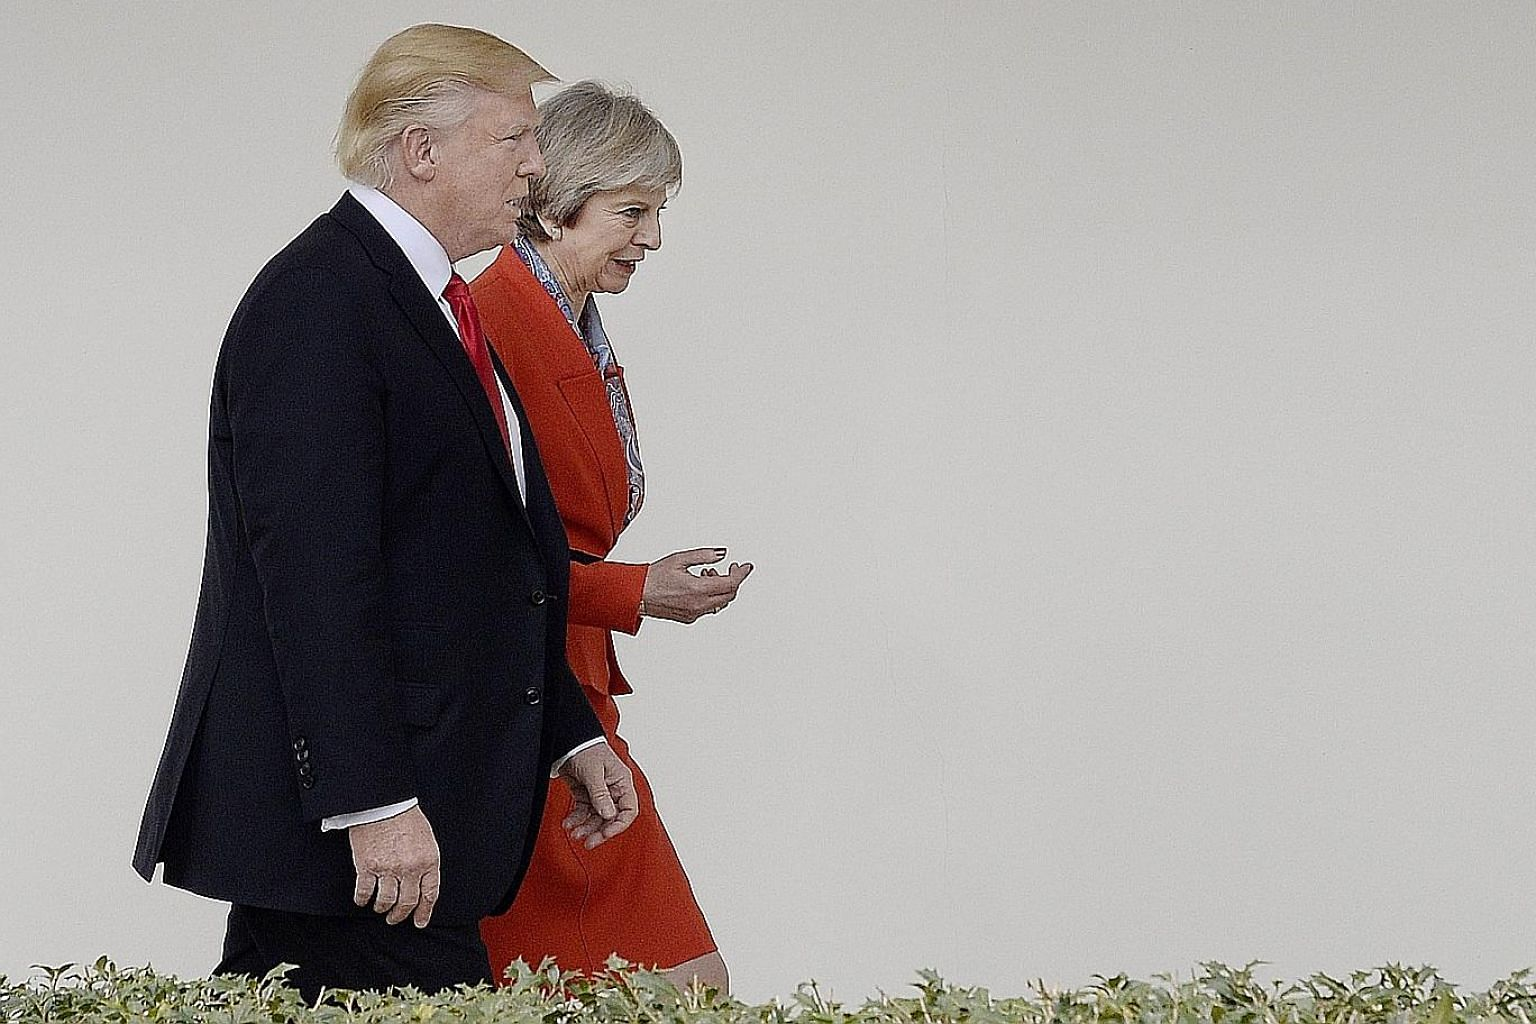 Mr Trump and Mrs May at the White House last month. The invitation to visit Britain that she extended to Mr Trump has been criticised as an unseemly and unprecedented outreach effort intended to offset the damage from the Brexit vote to leave the EU.